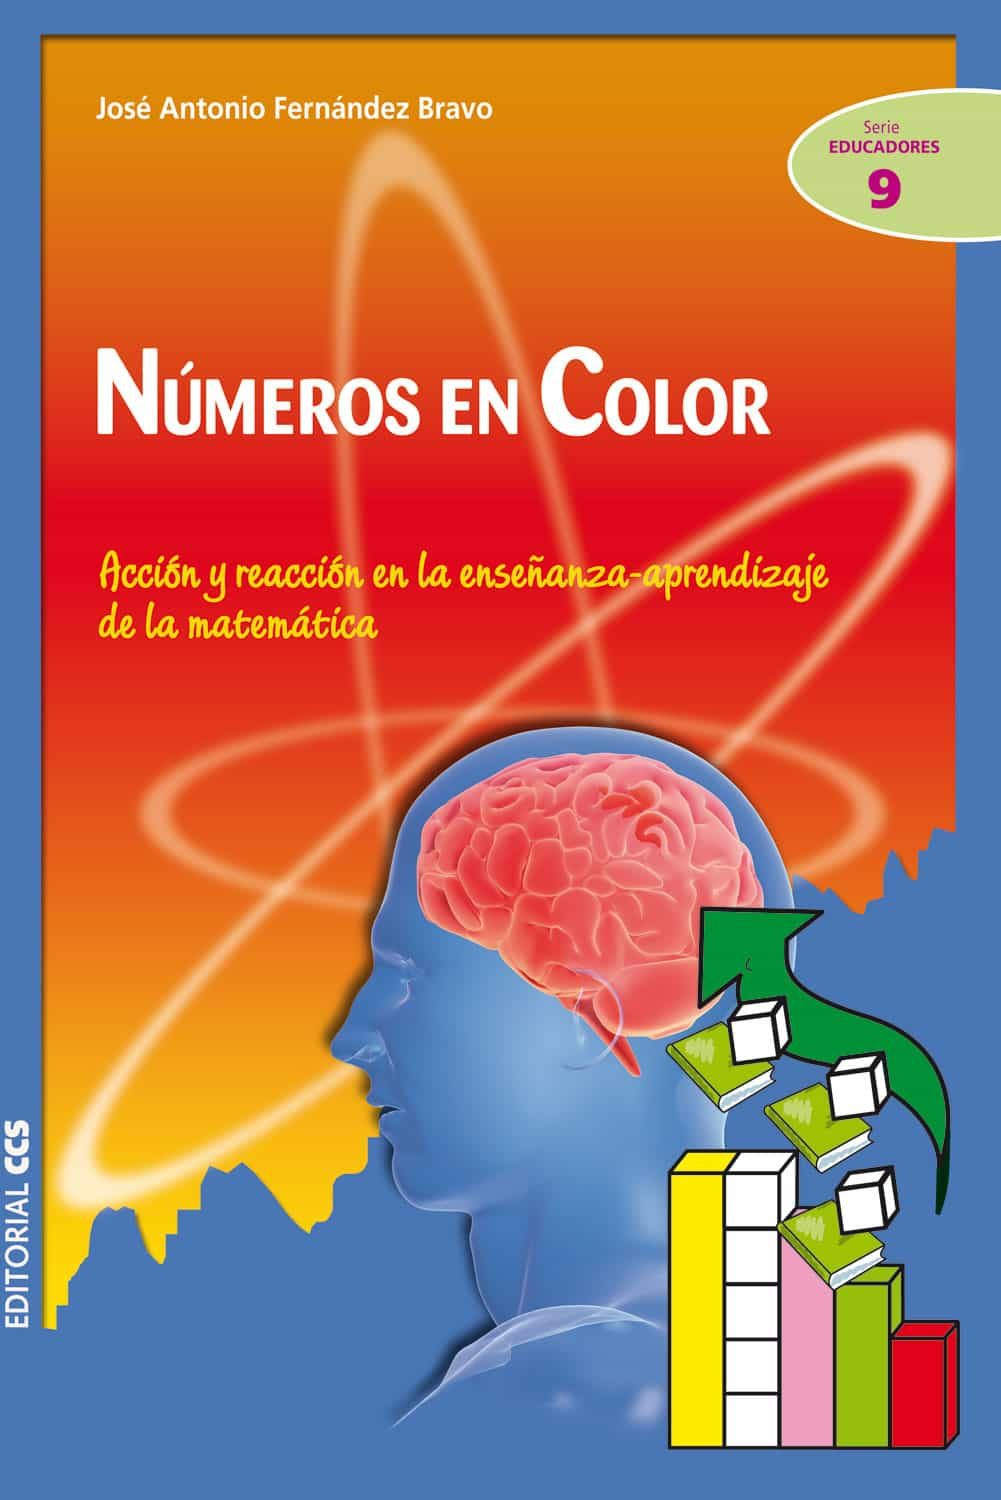 NUMEROS EN COLOR: ACCION Y REACCION EN LA ENSEÑANZA-APRENDIZAJE D E ...